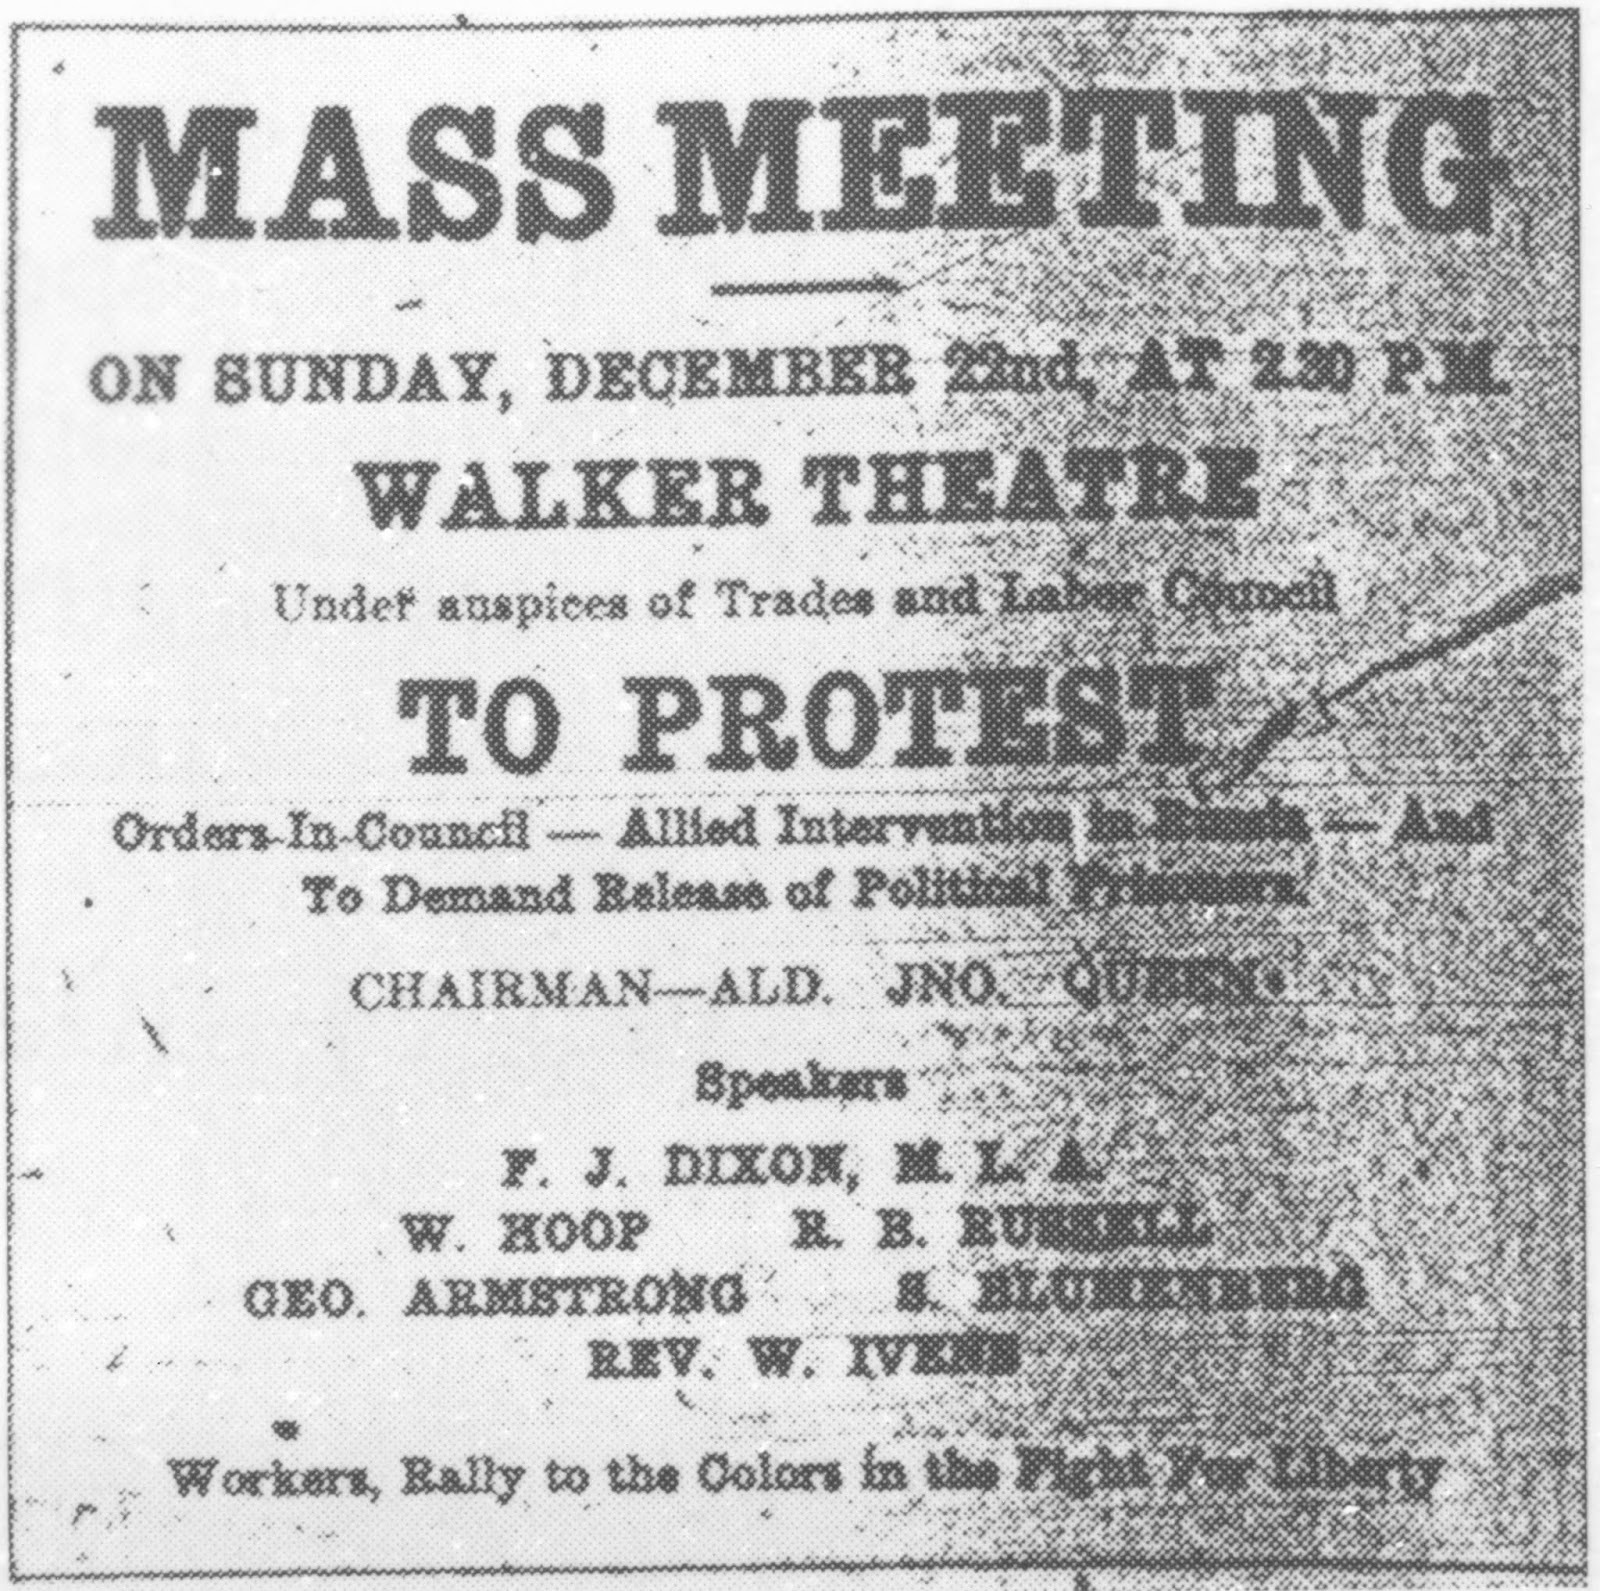 Labour leaders in Winnipeg held an assembly at the Walker Theatre in December 1918 where they decried capitalism. (Heritage Winnipeg)